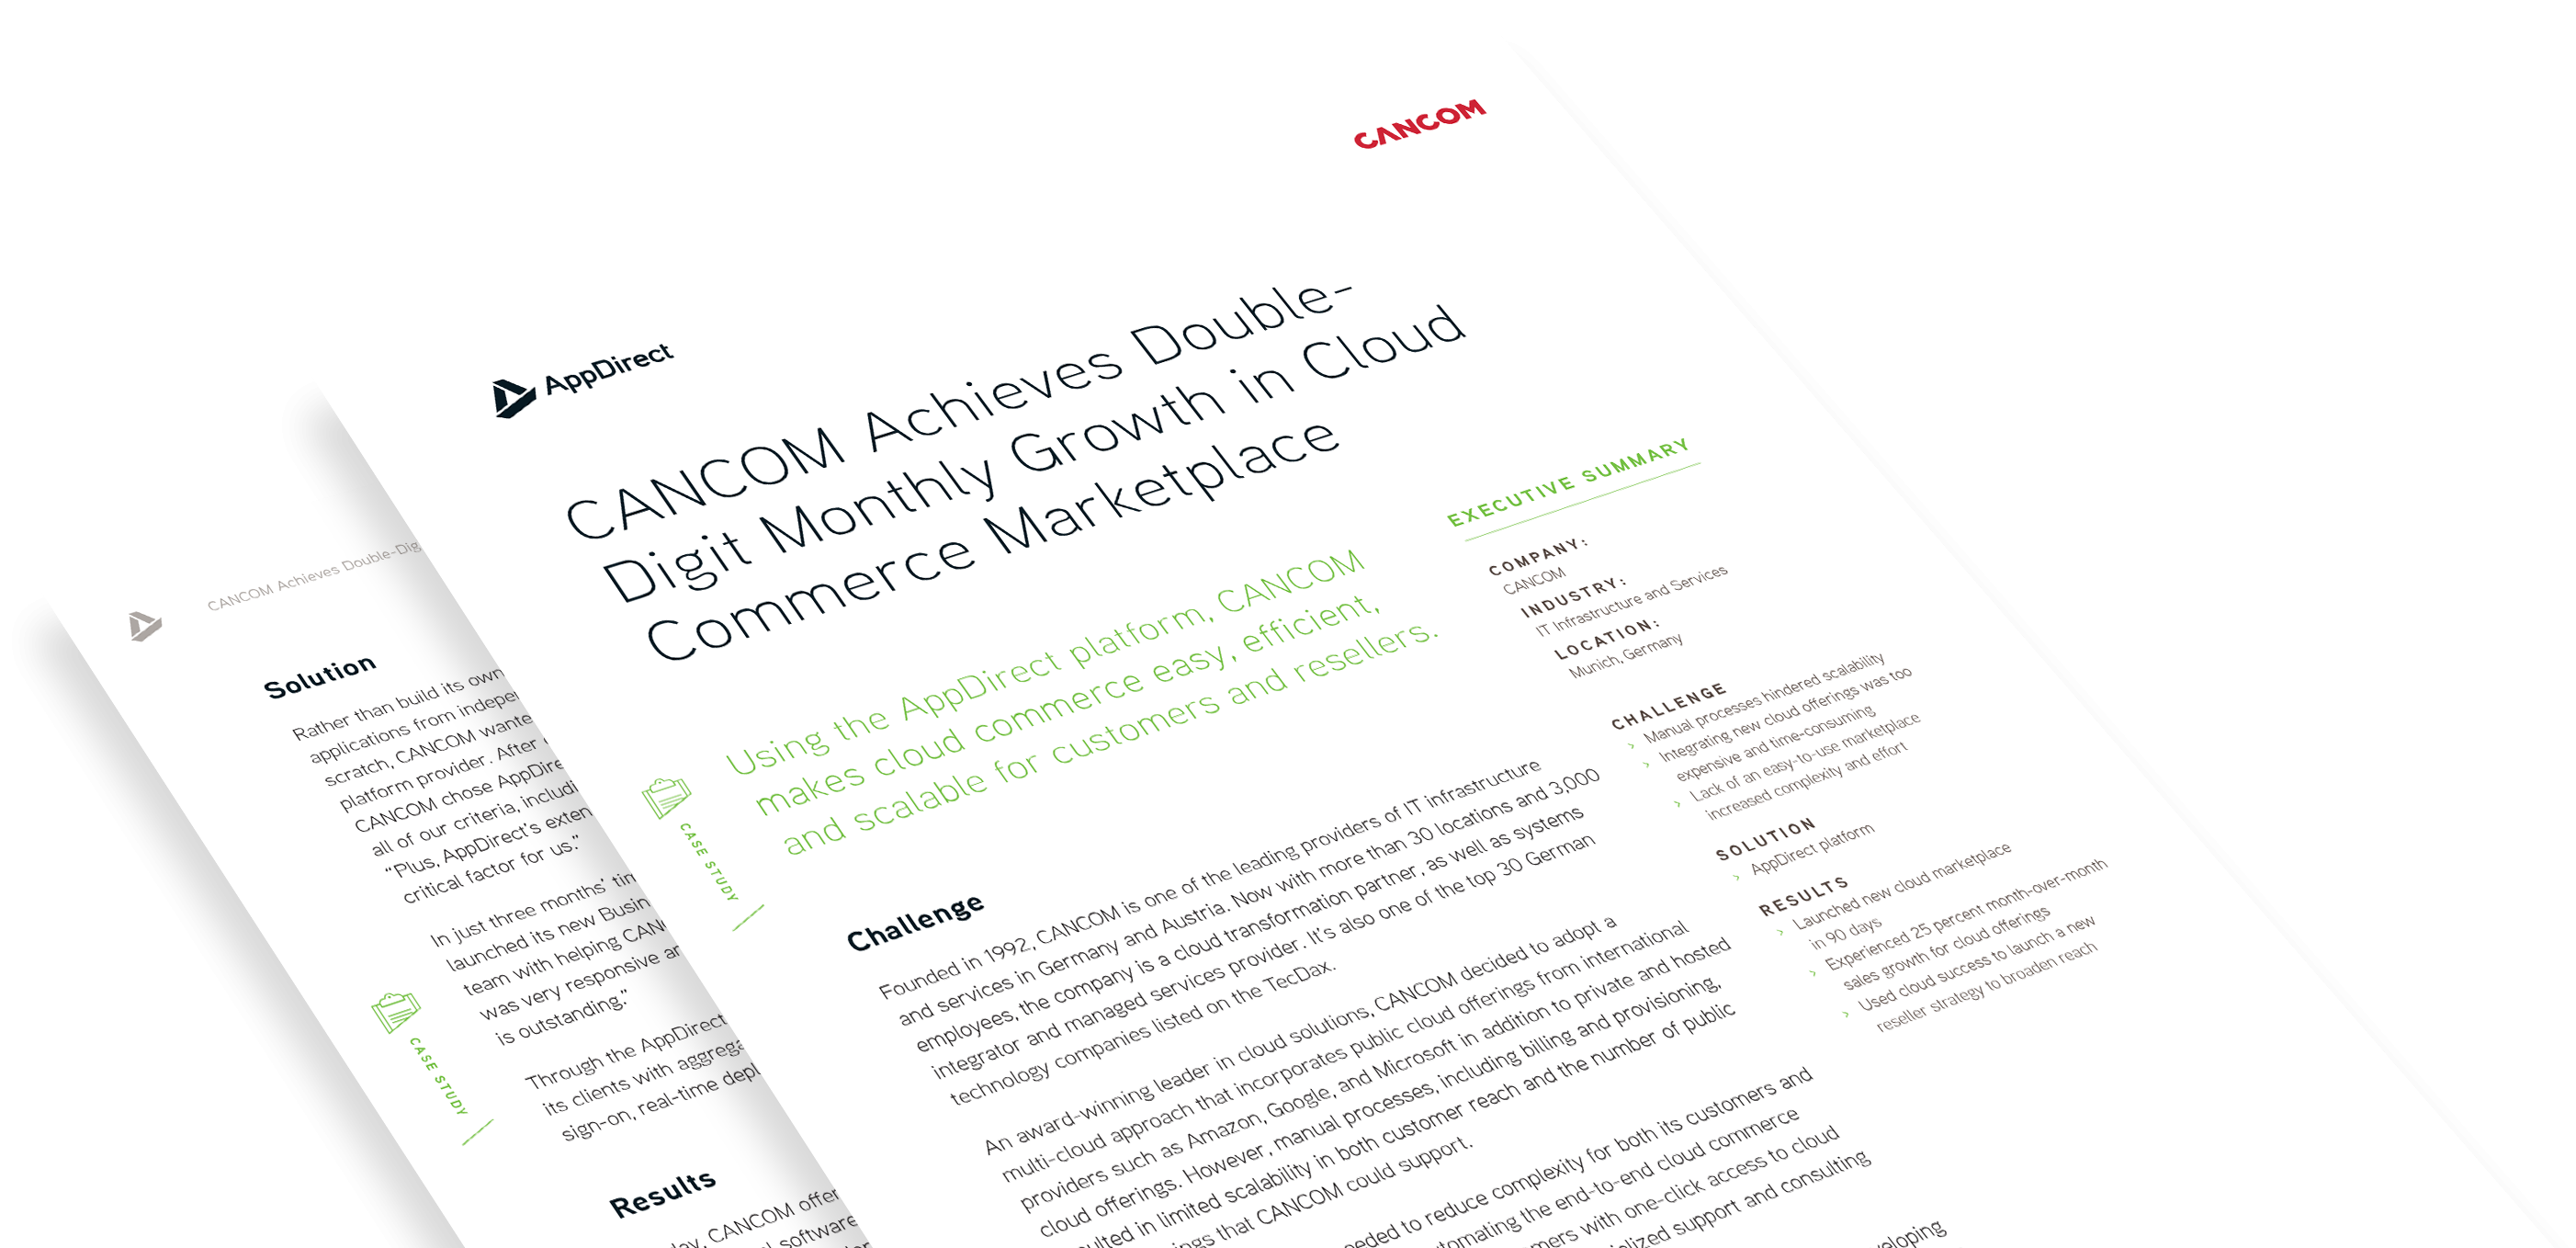 CANCOM Achieves Double-Digit Monthly Growth in Cloud Commerce Marketplace